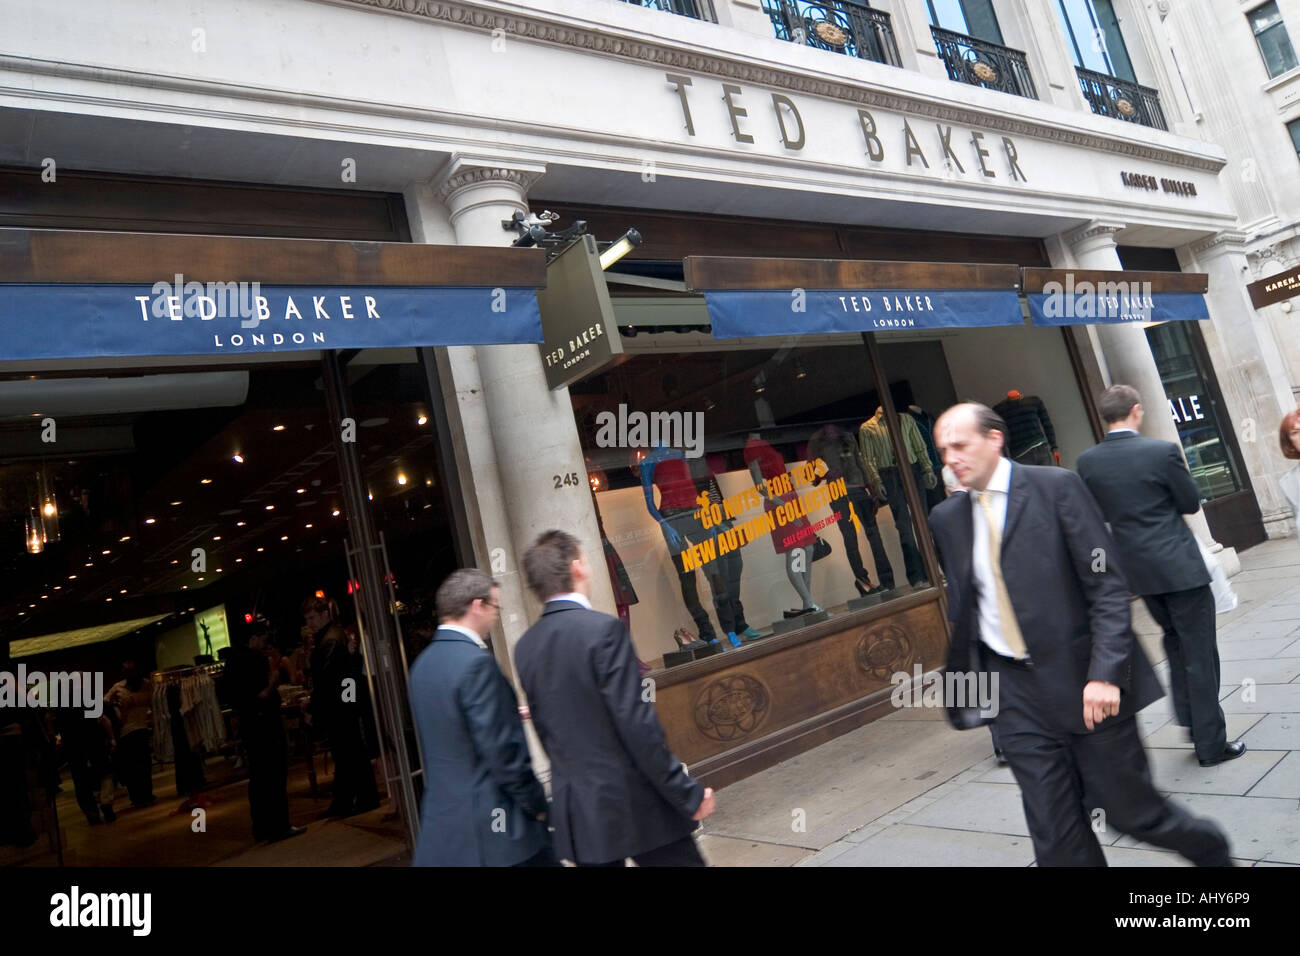 Ted Baker Shop Stock Photos   Ted Baker Shop Stock Images - Alamy d16303cbecbe7